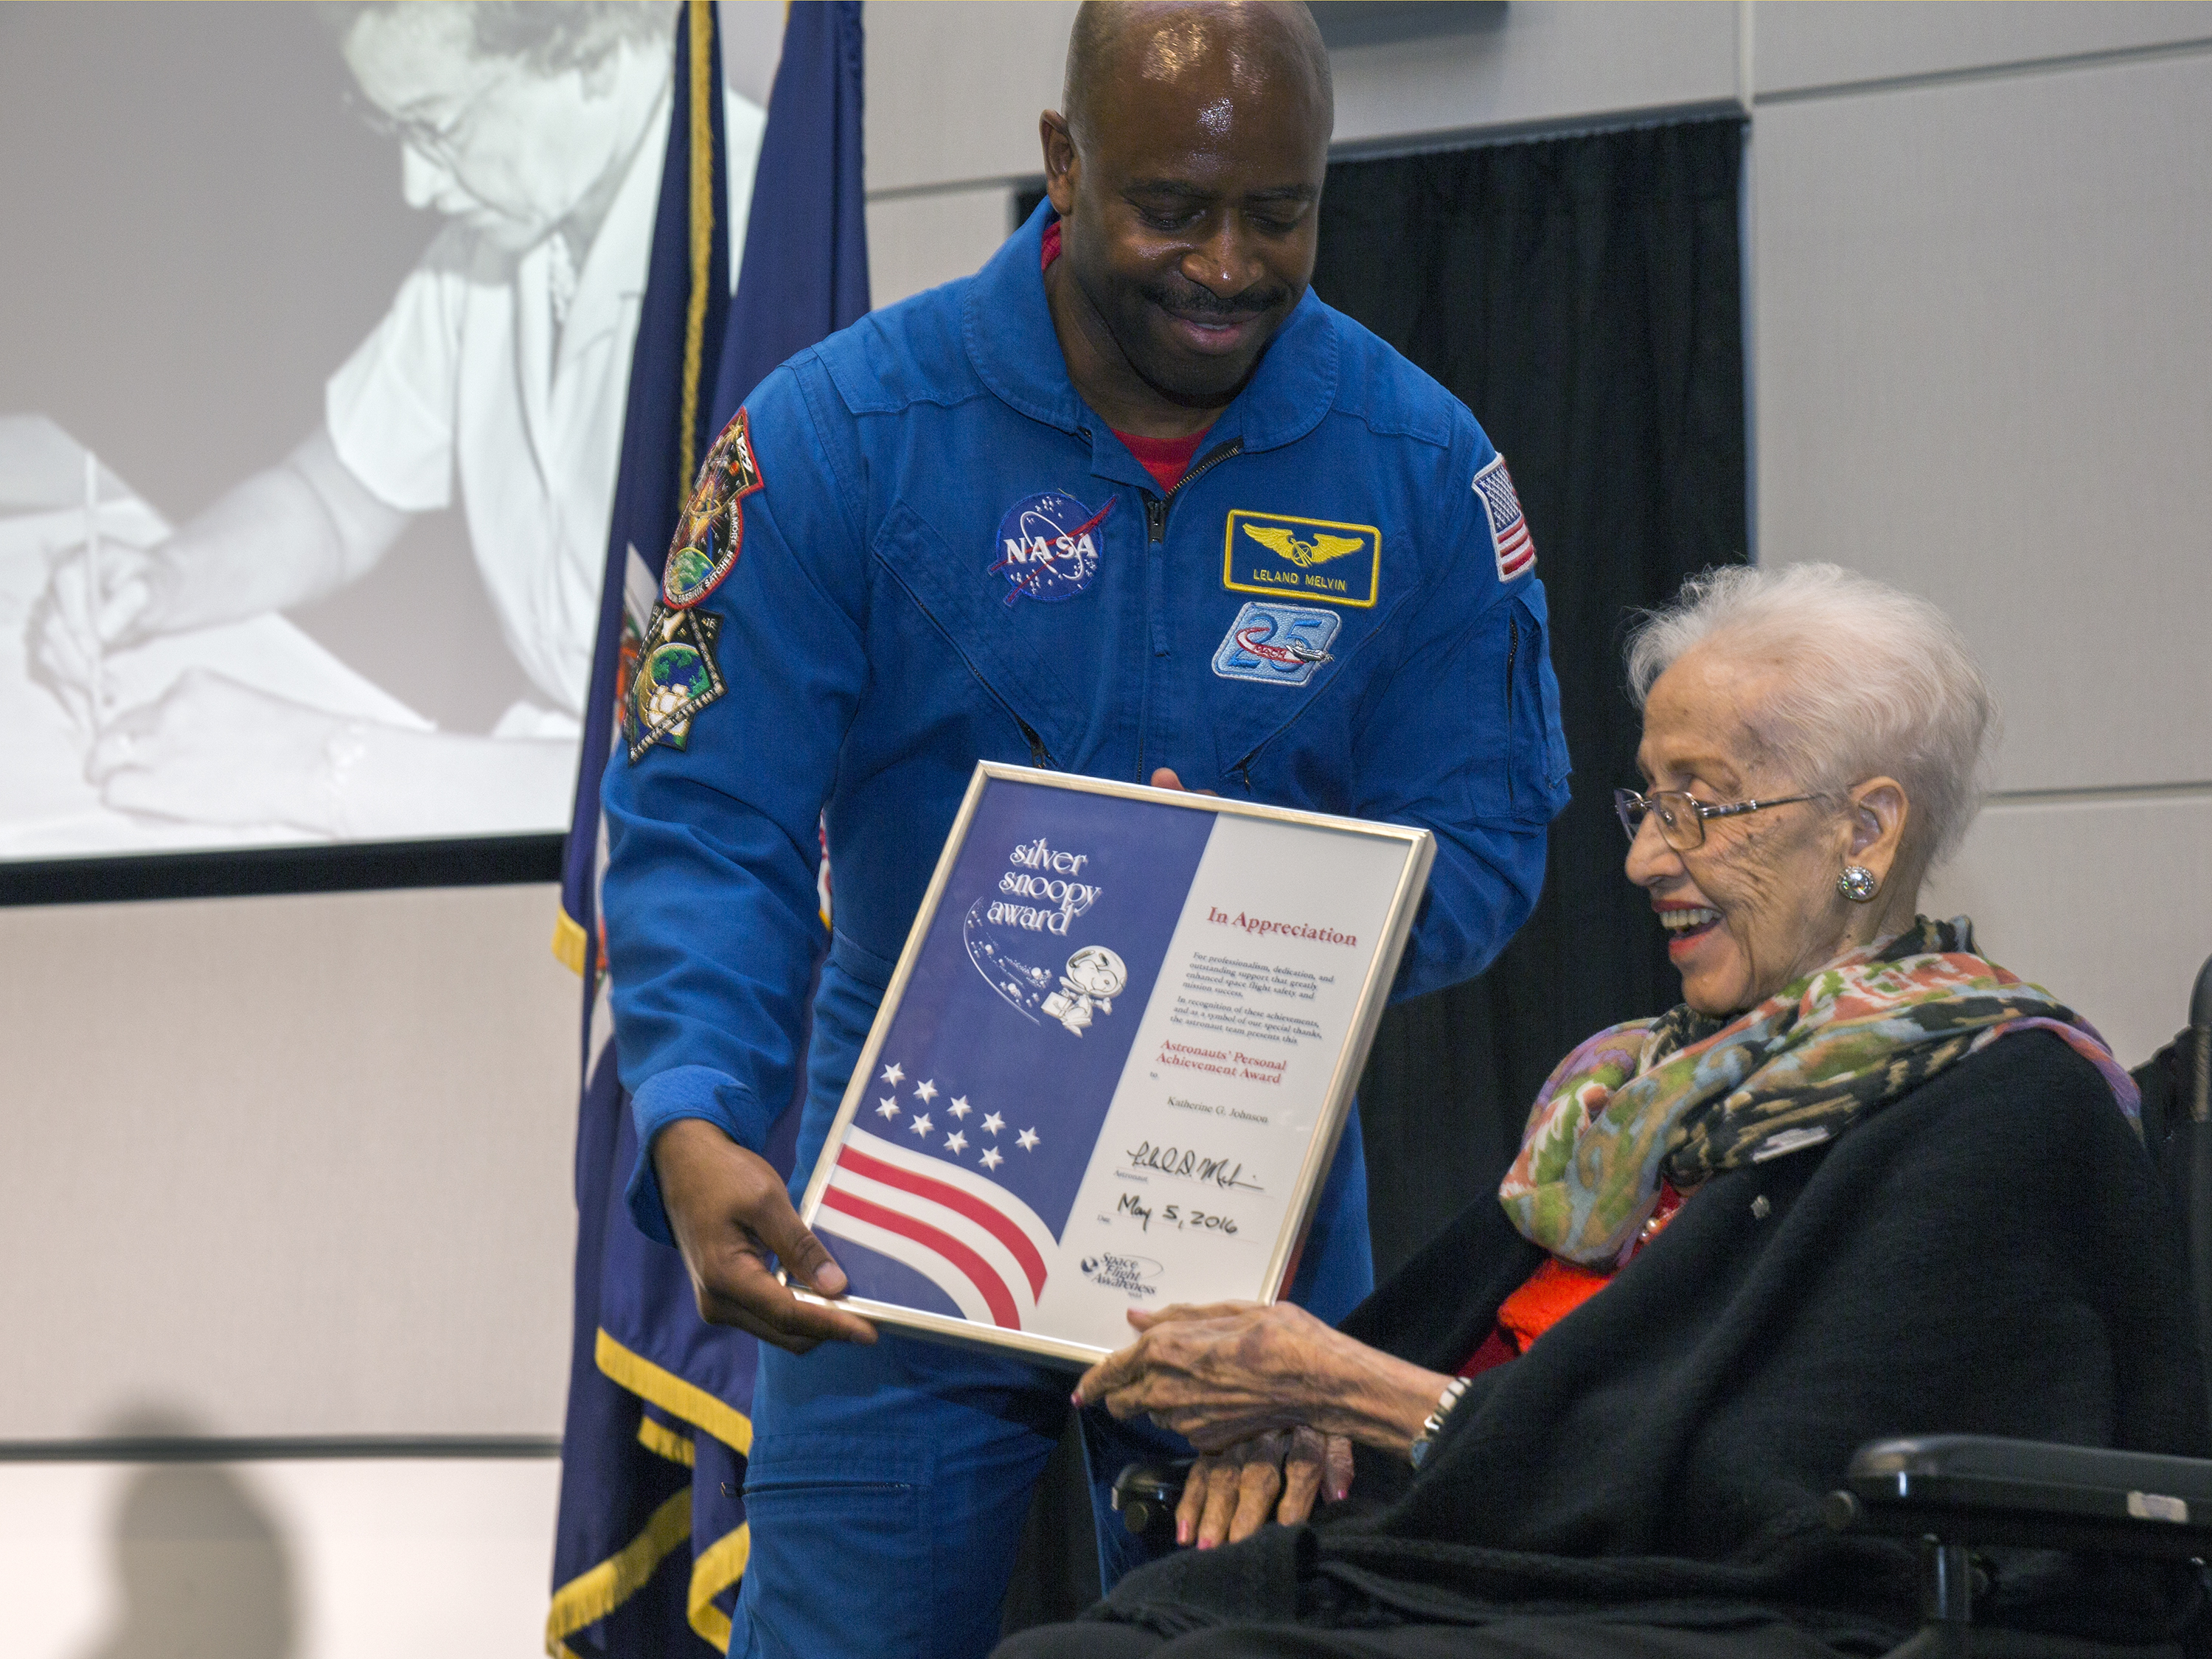 Computer Facility Named After Human Computer Katherine Johnson Nasa